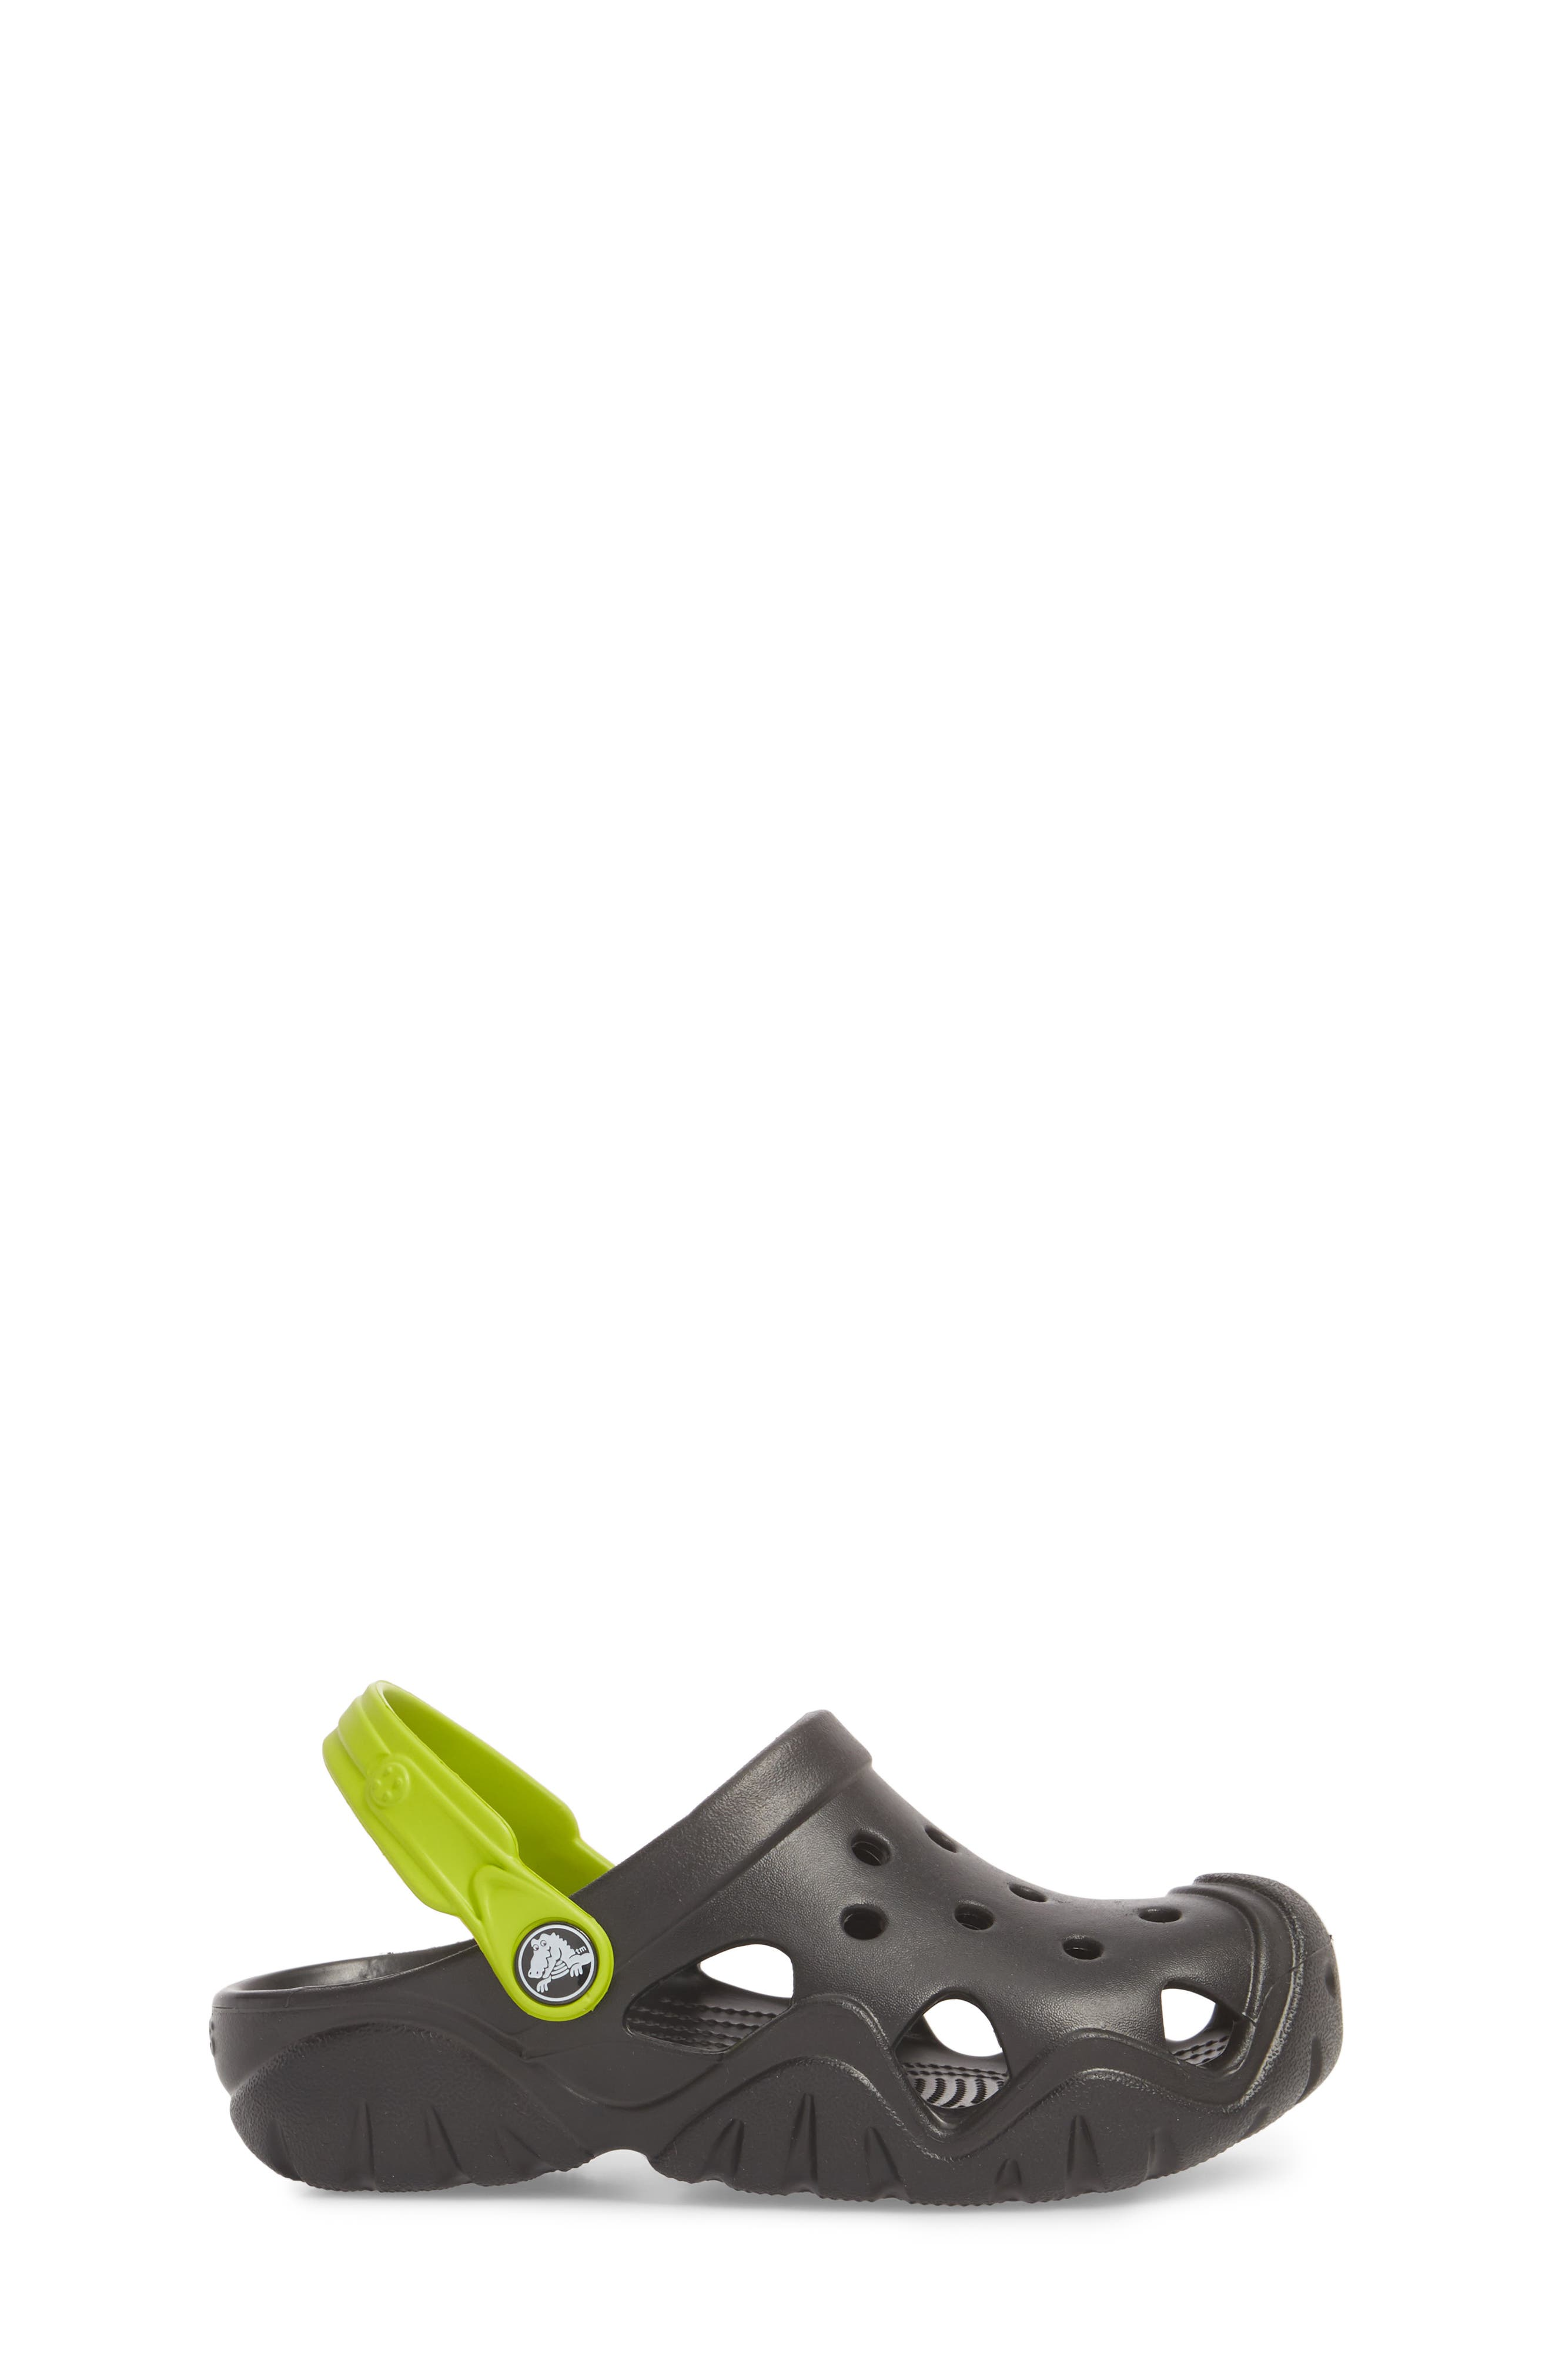 Swiftwater Clogs,                             Alternate thumbnail 3, color,                             001